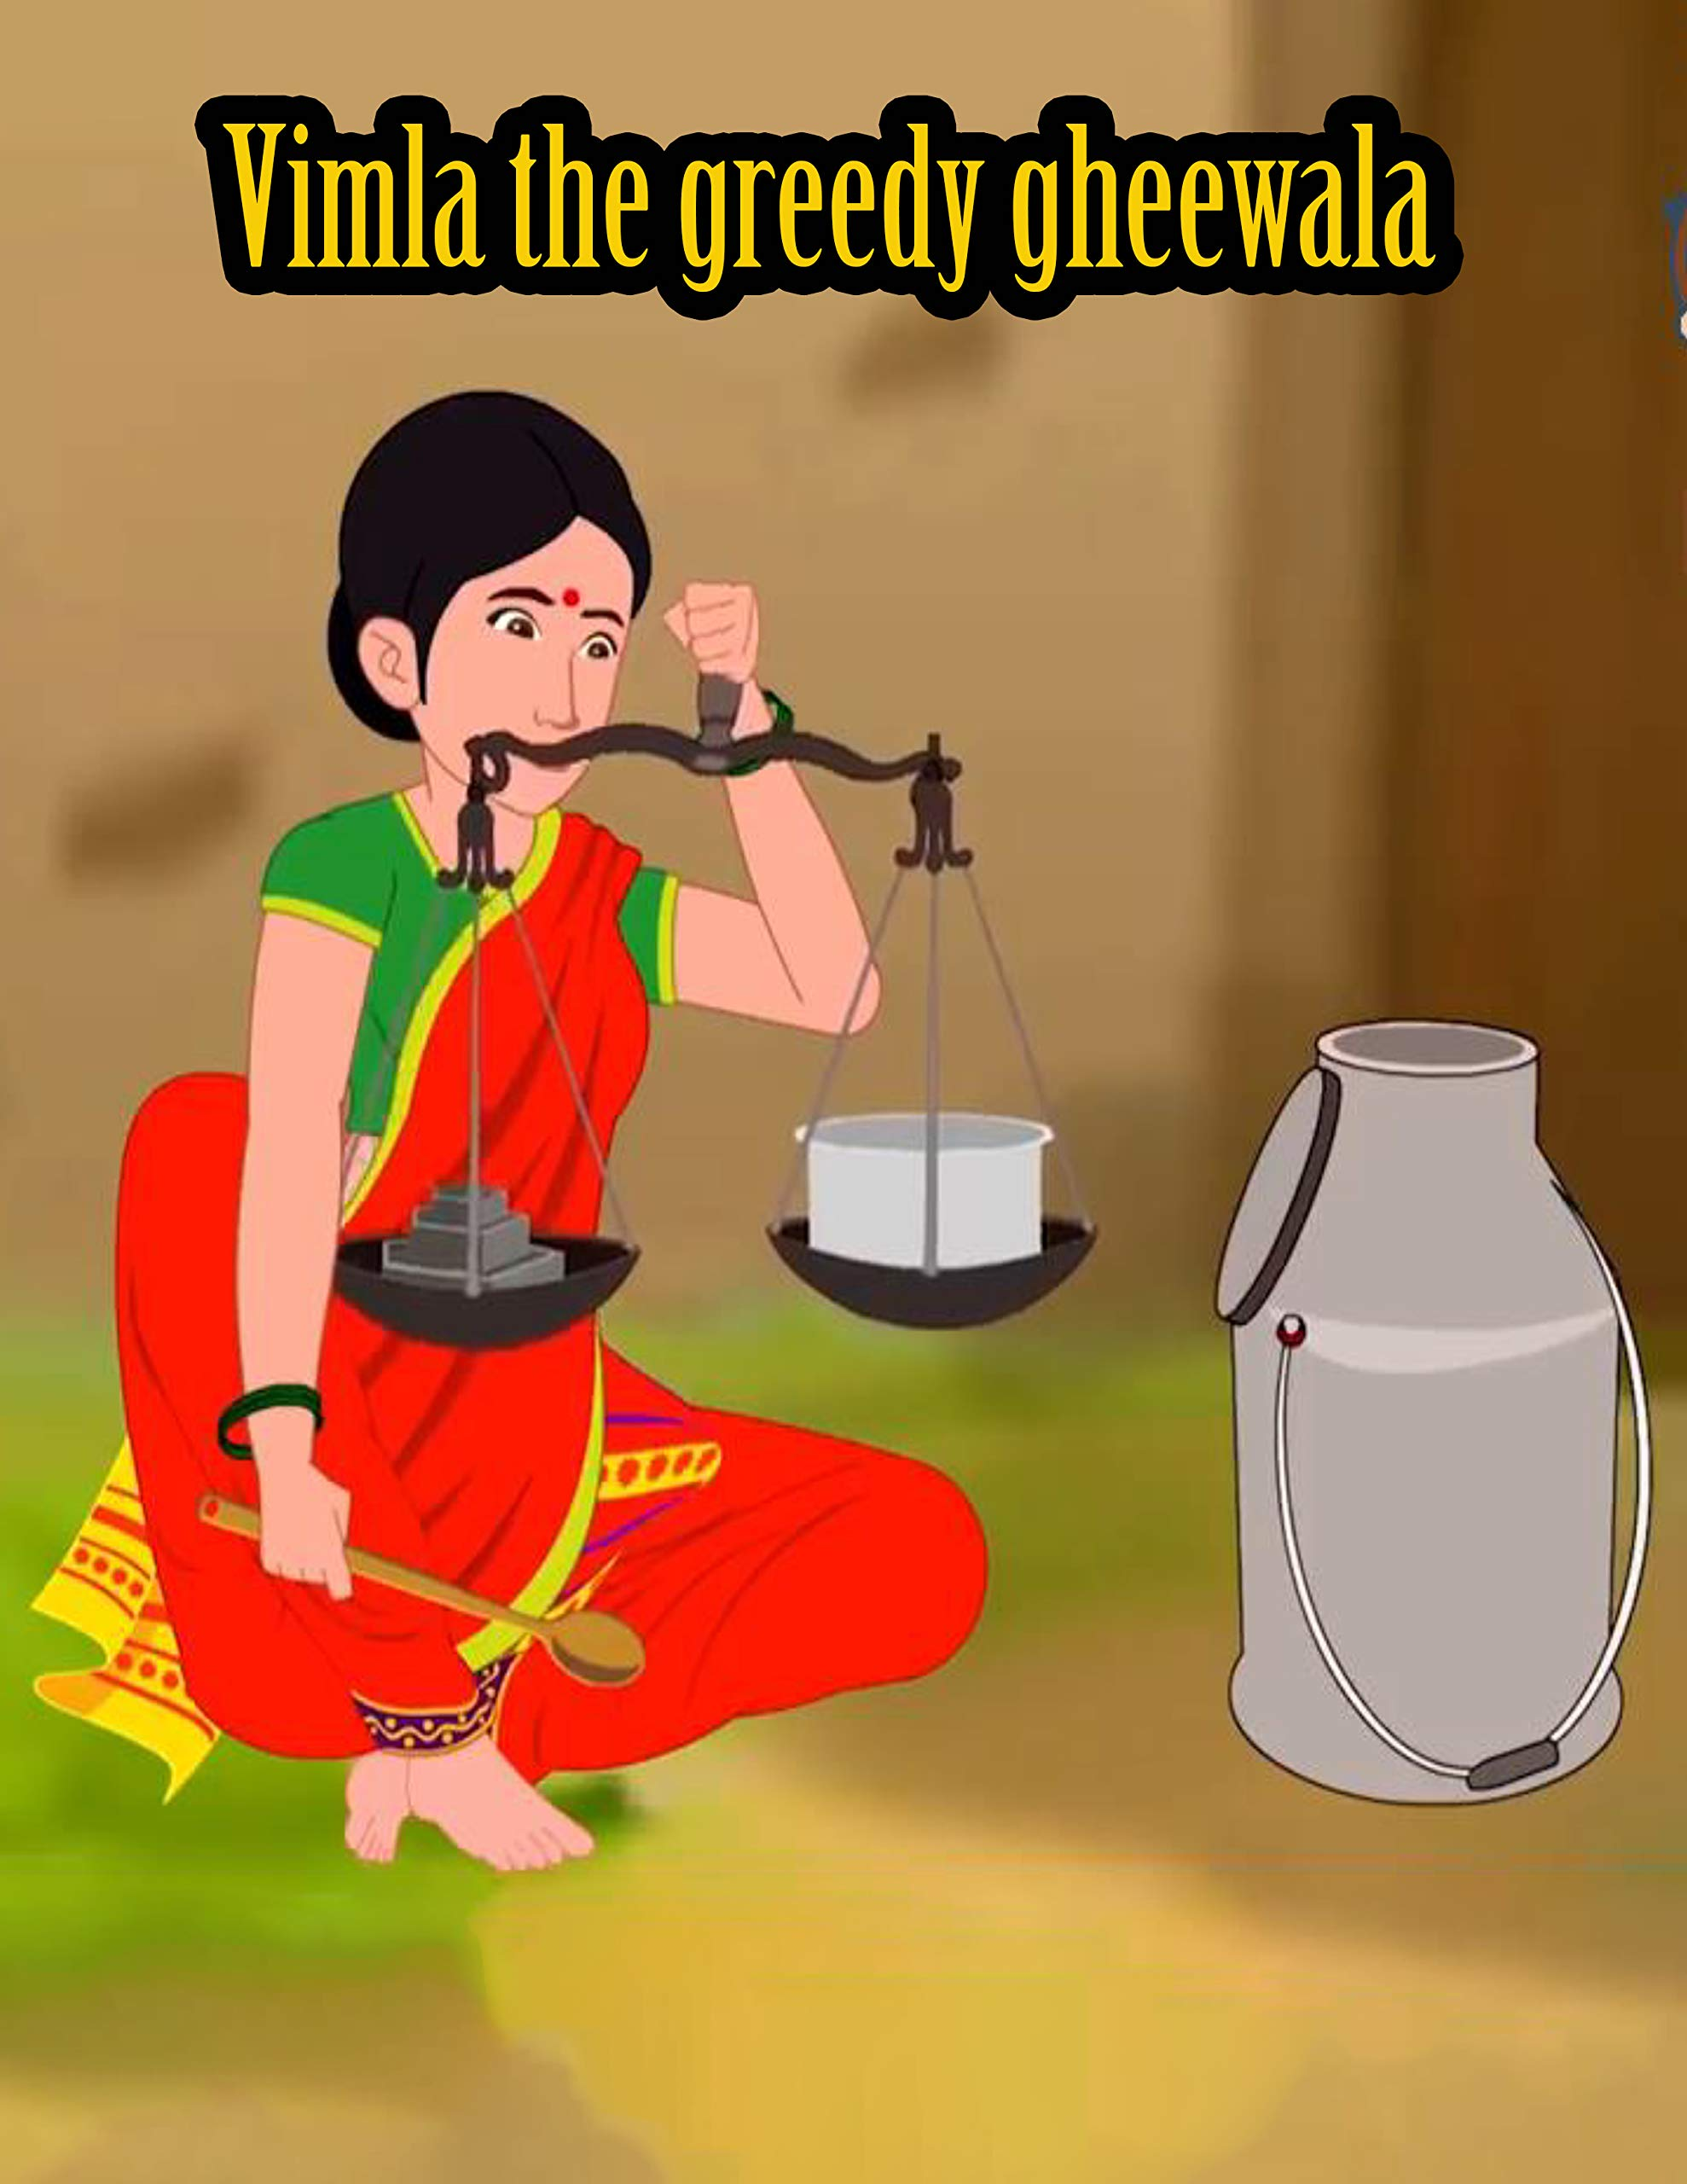 Vimla the greedy gheewala | Bedtime Stories For Kids: Make your child enjoy every moment, fun and happiness